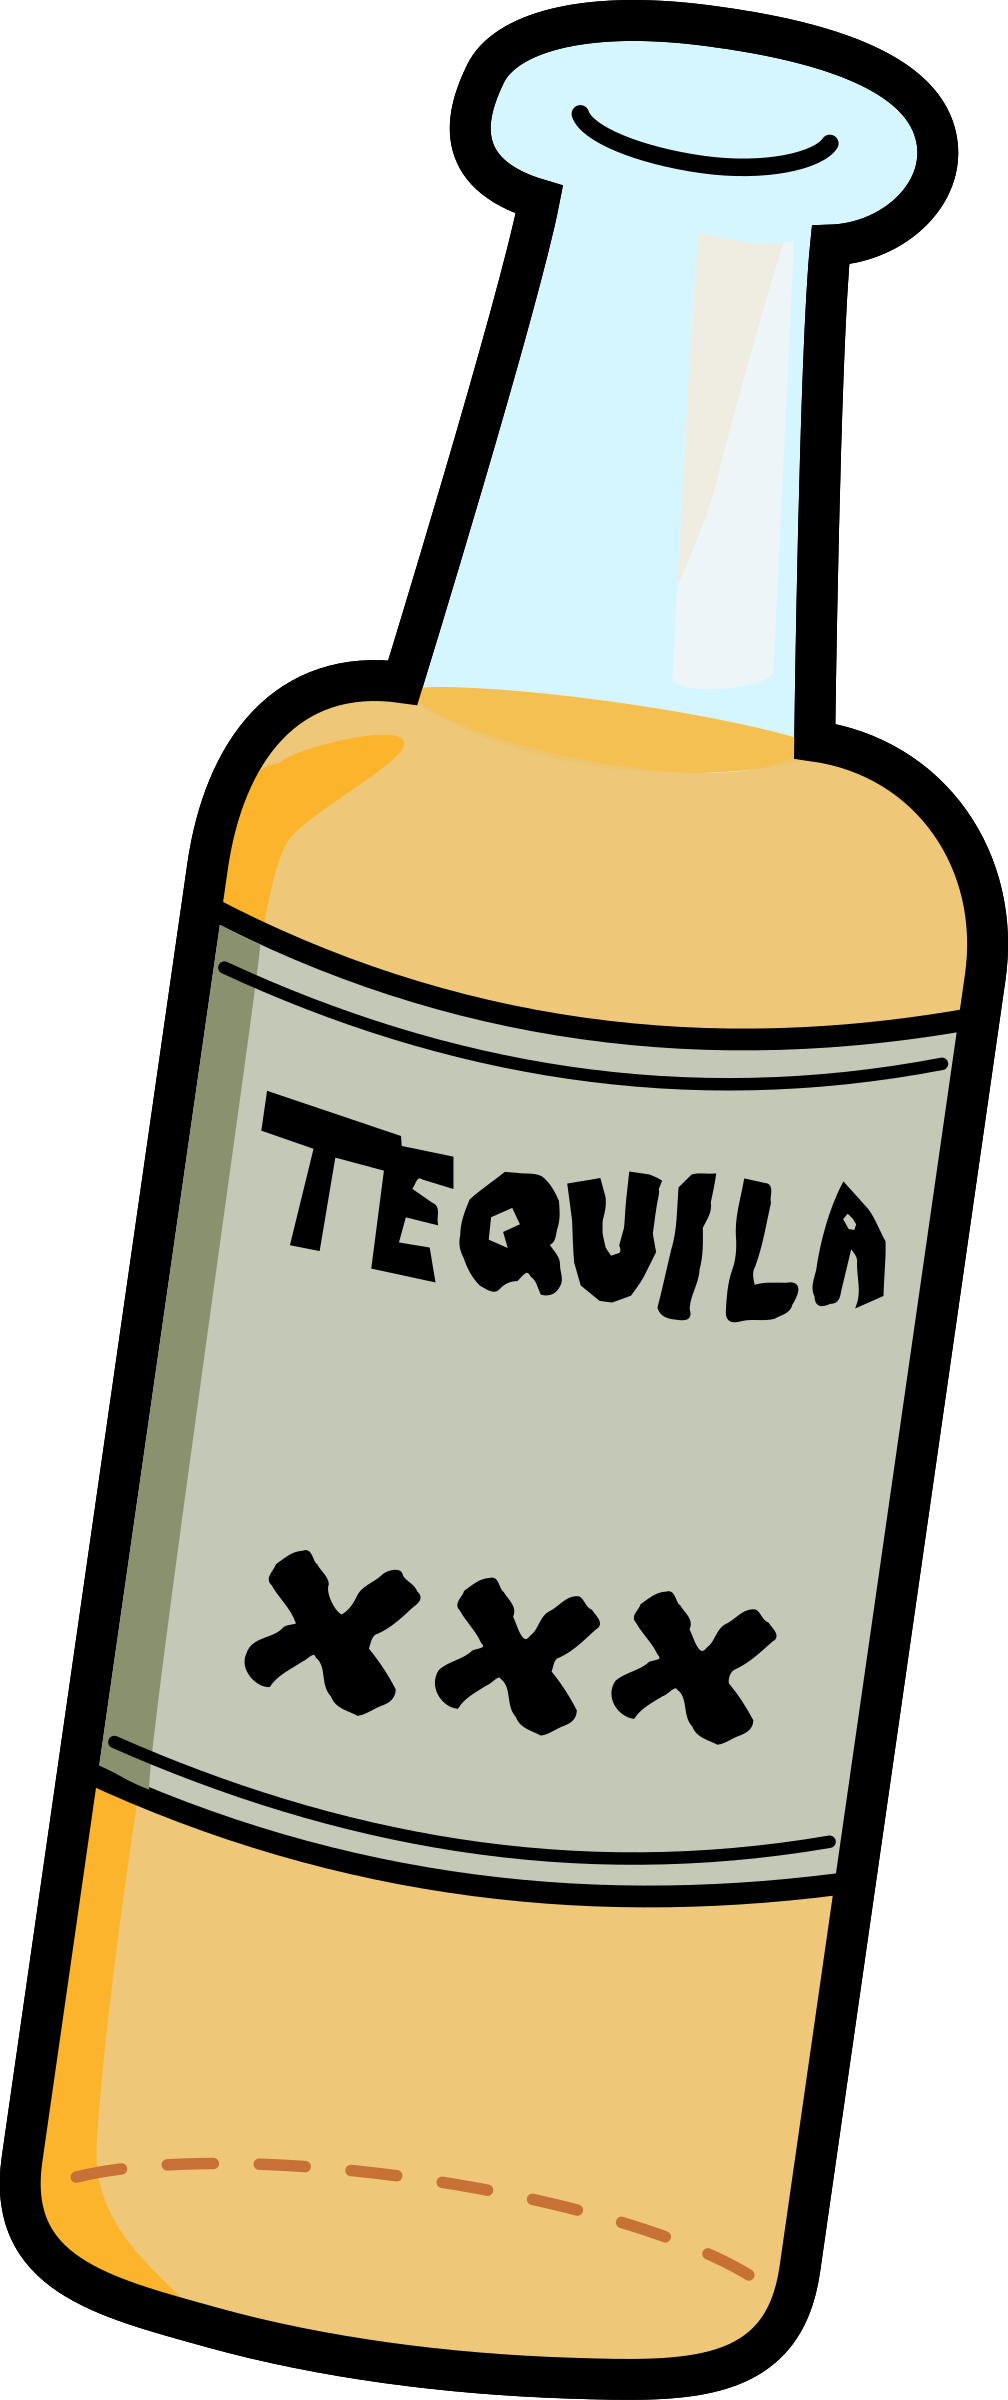 Tequila bottles clipart png freeuse library Bottle of Hard Tequila vector clipart image - Free stock ... png freeuse library